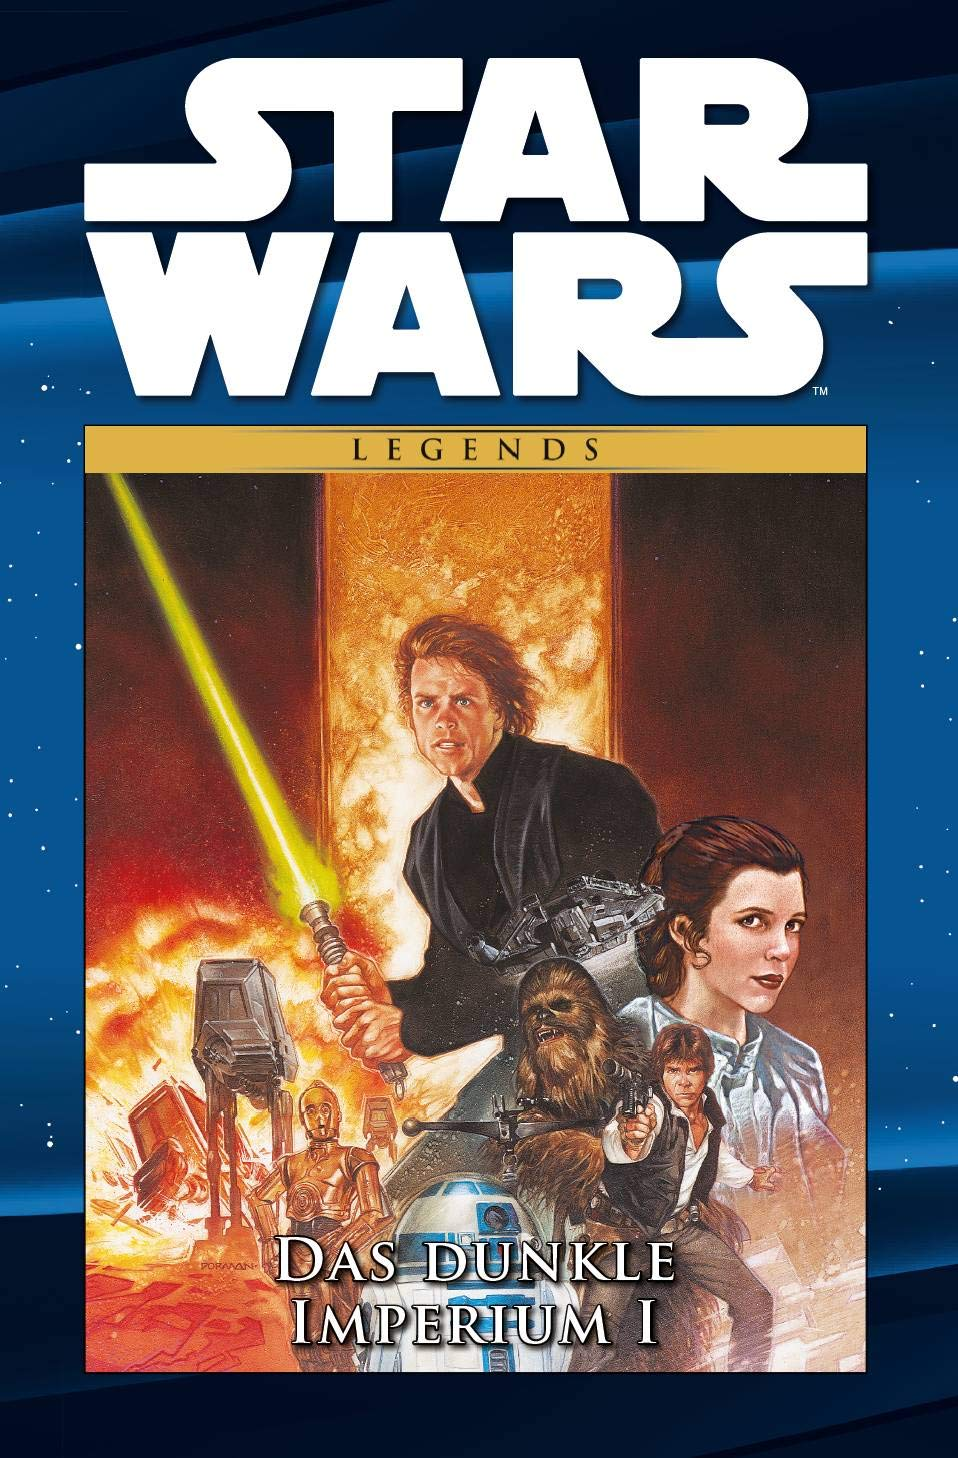 Star Wars Comic-Kollektion, Band 63: Das dunkle Imperium I (21.01.2019)